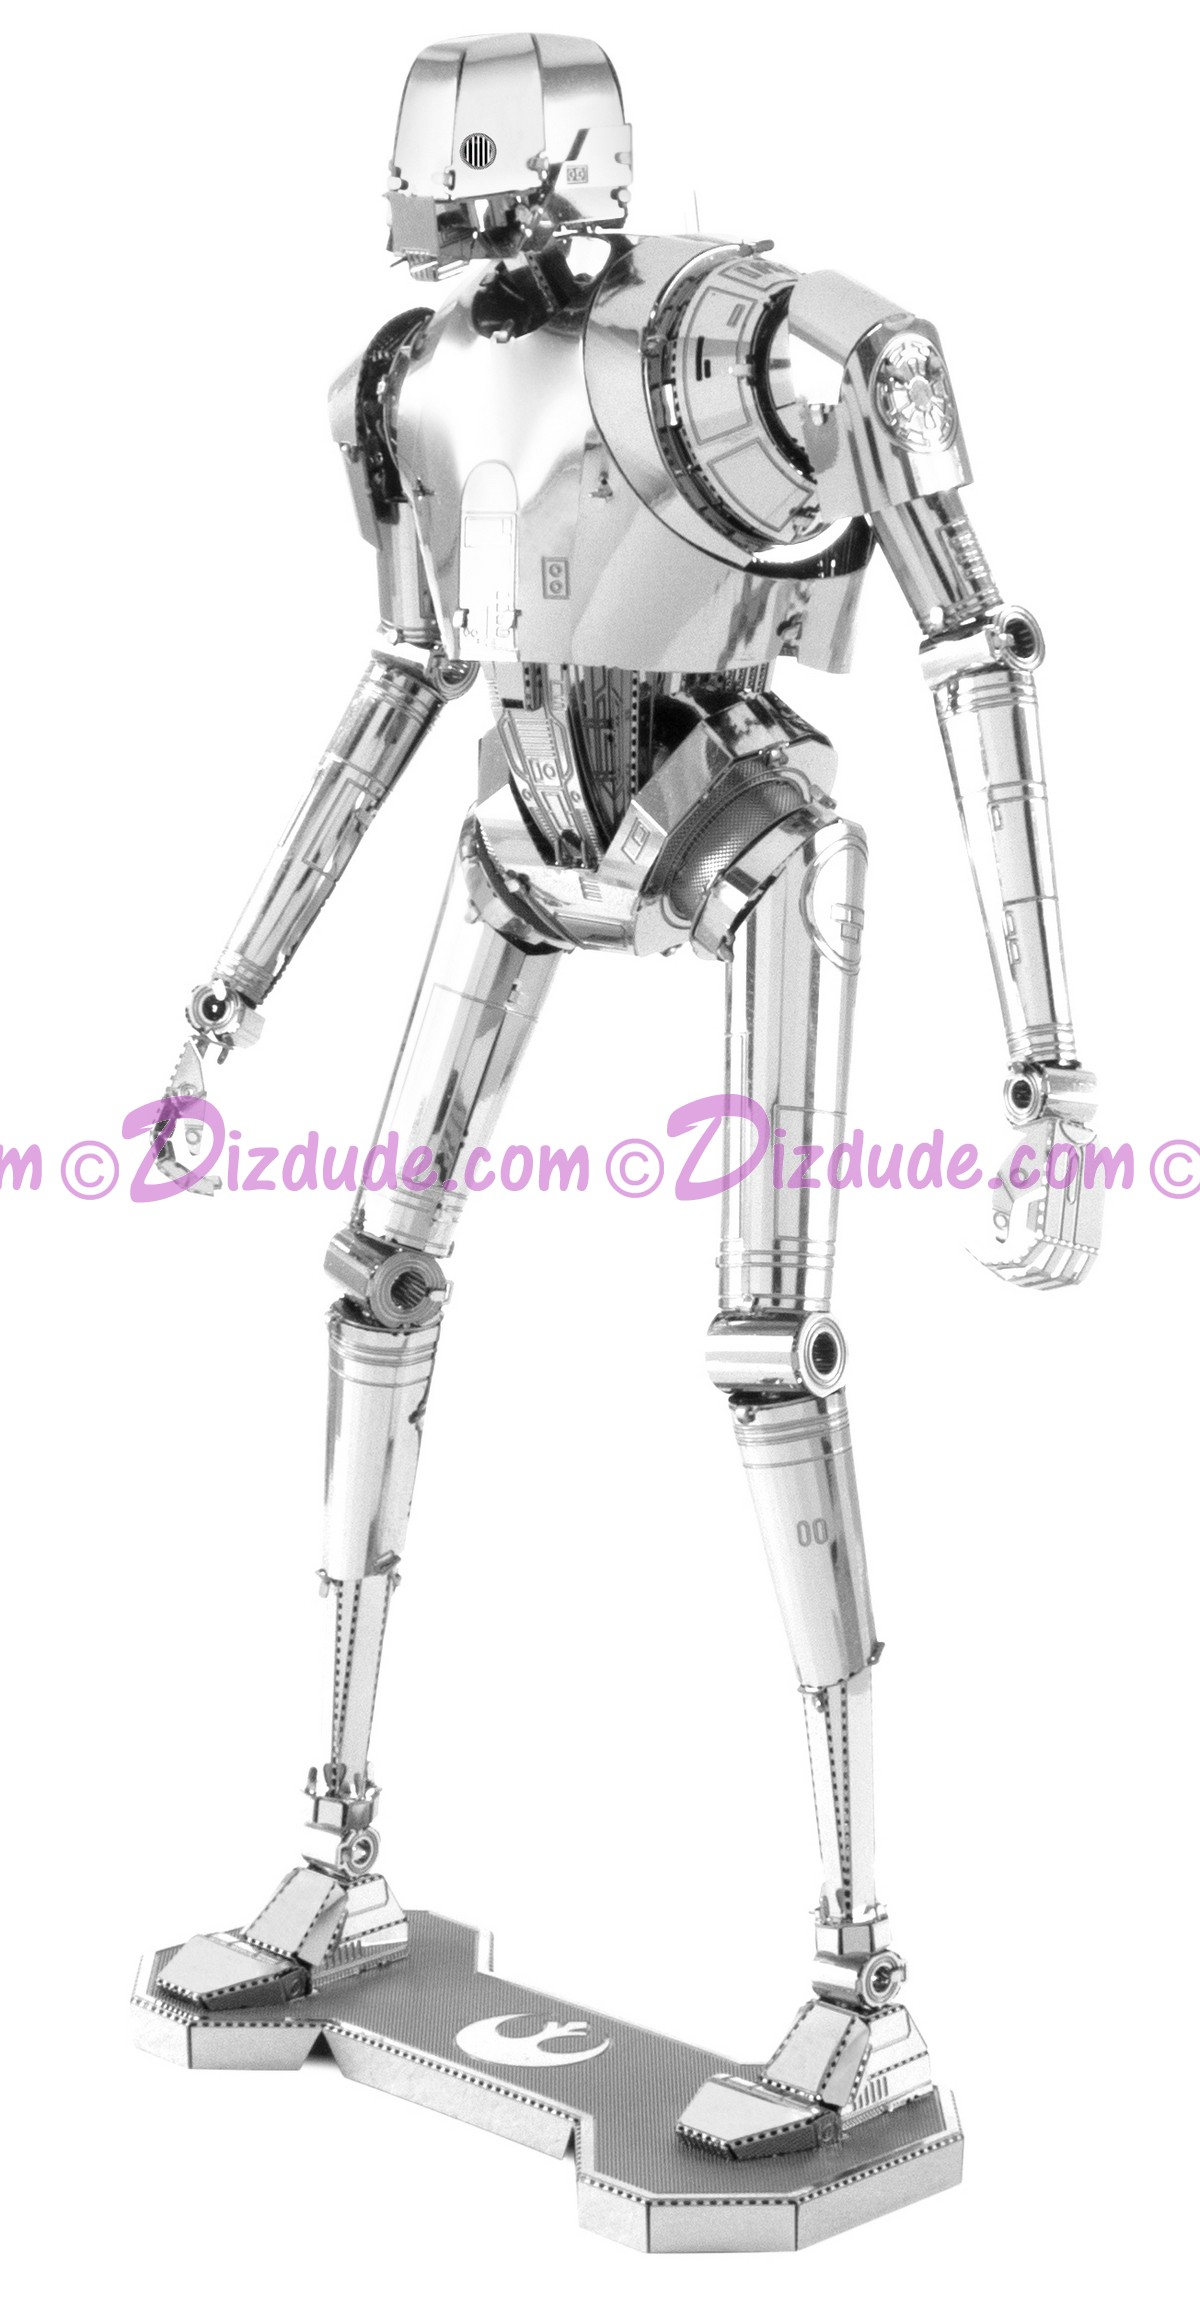 Rogue One K-2SO 3D Metal Model Kit ~ Disney Star Wars © Dizdude.com